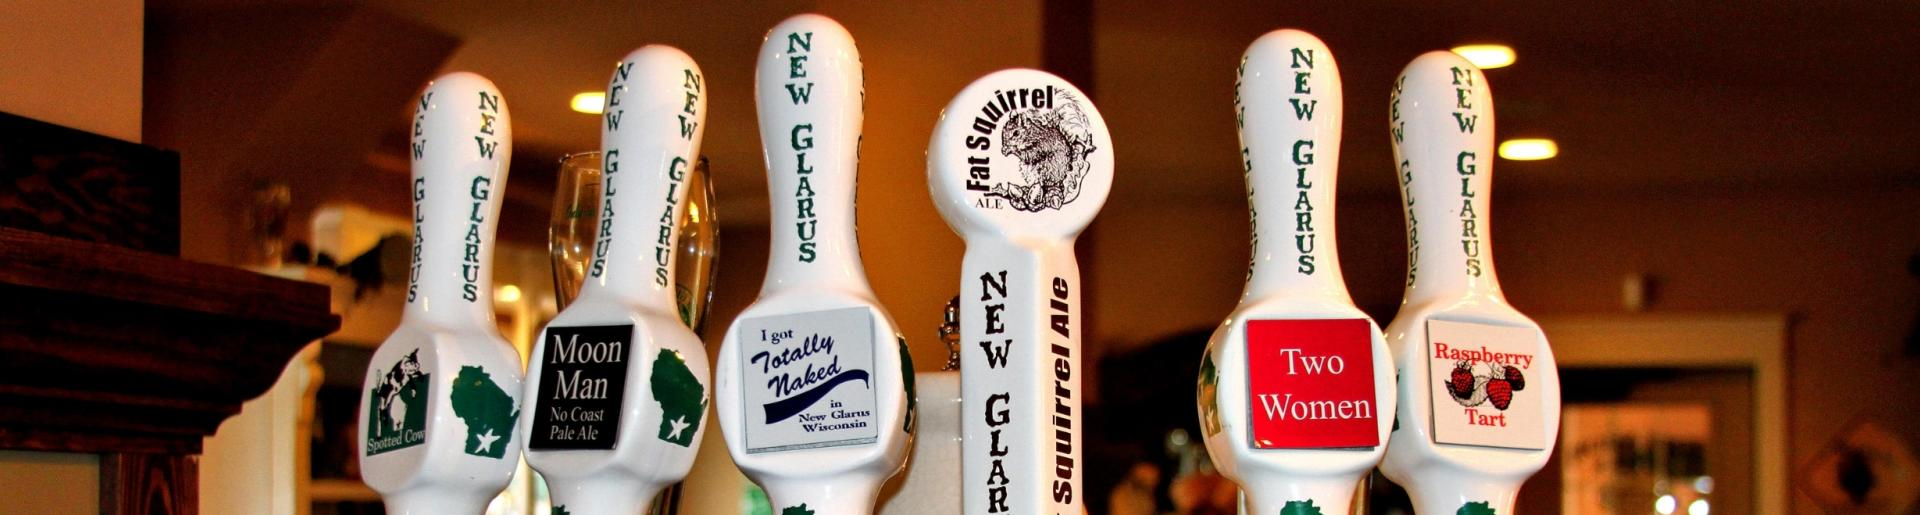 New Glarus Taps